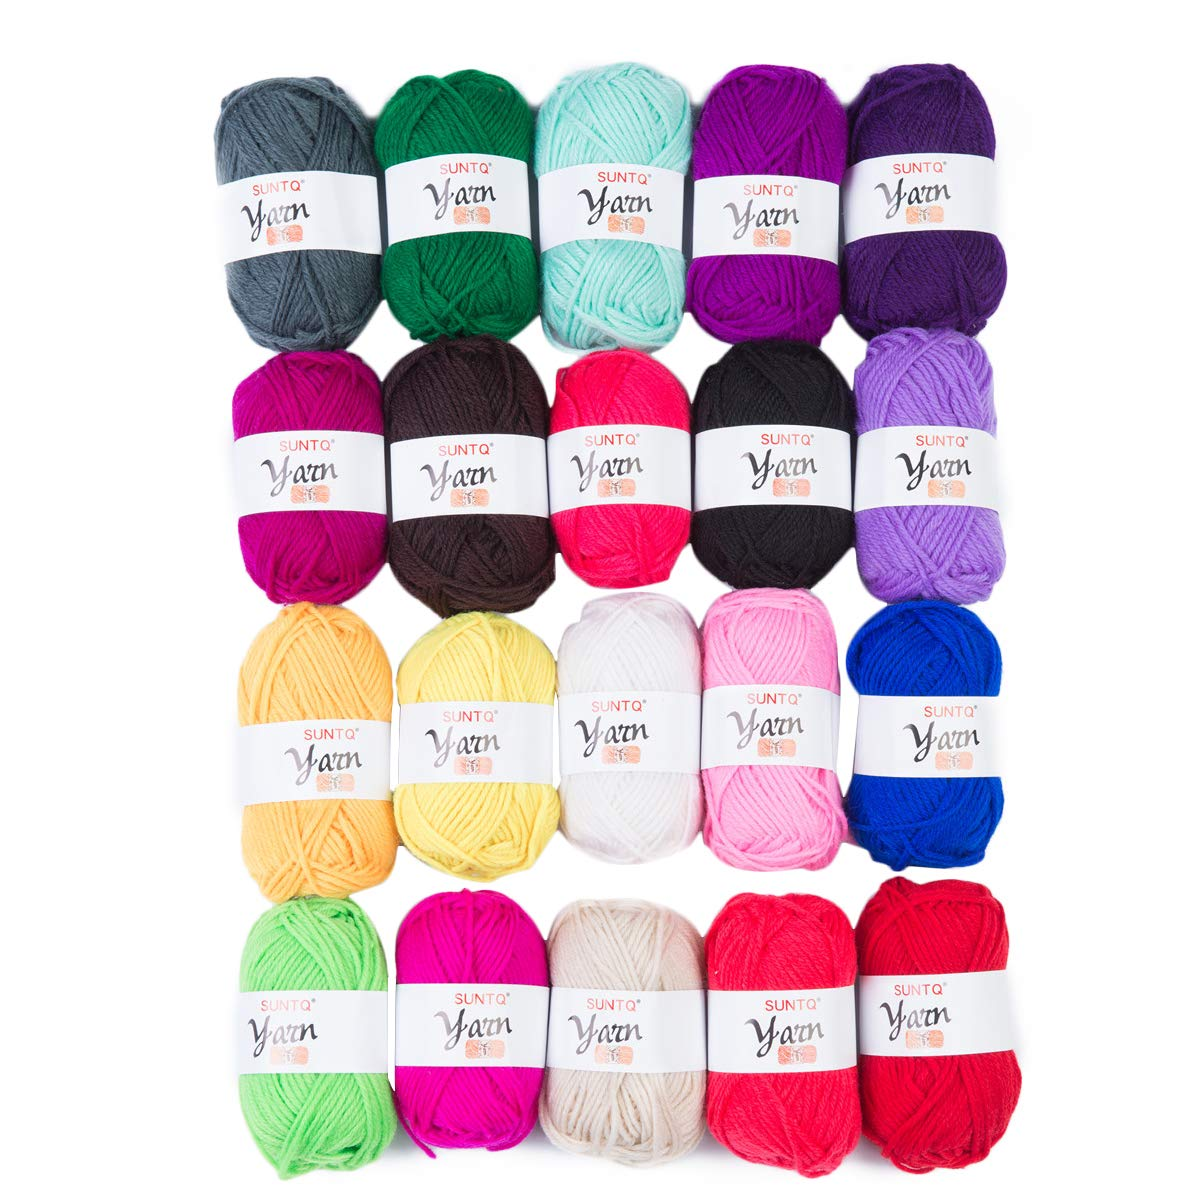 SUNTQ 100% Acrylic Yarn 20 x 50yard (total about 1000 yards) Skeins Bonbons Yarn Assorted Colors for Crochet & Knitting Assorted Rainbow Variety Colored Assortment